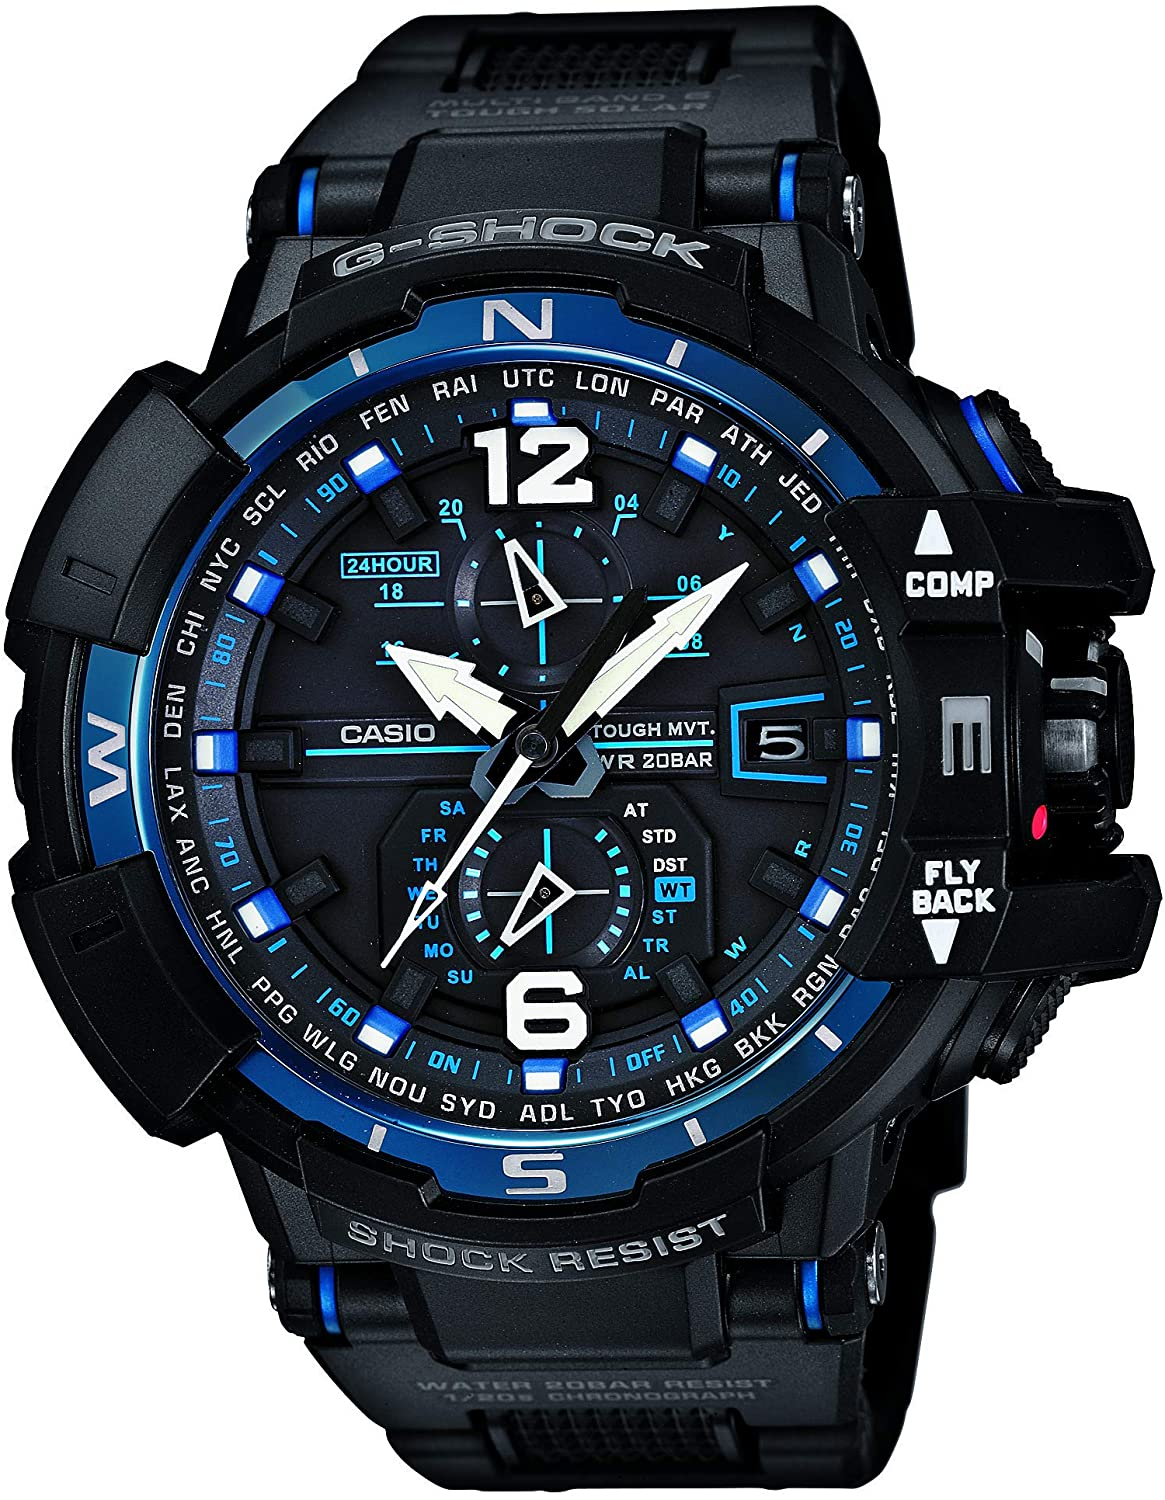 Casio G-SHOCK SKY COCKPIT TOUGH SOLAR MVT MULTIBAND6 GW-A1100FC-1AJF Watch Japan Import